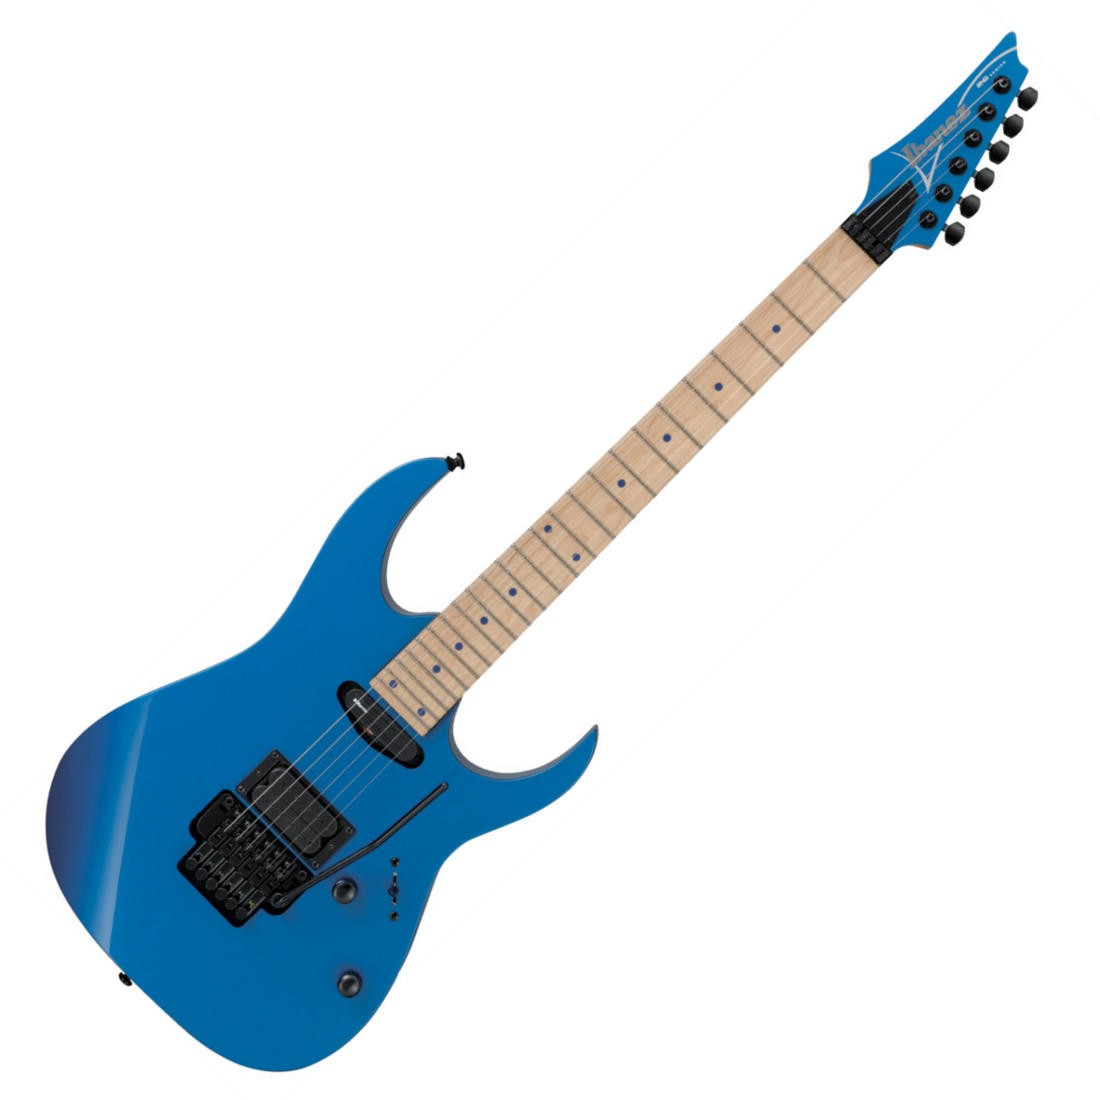 Guitar Ibanez 17334 Hd Wallpapers in Music   Imagescicom 1100x1100